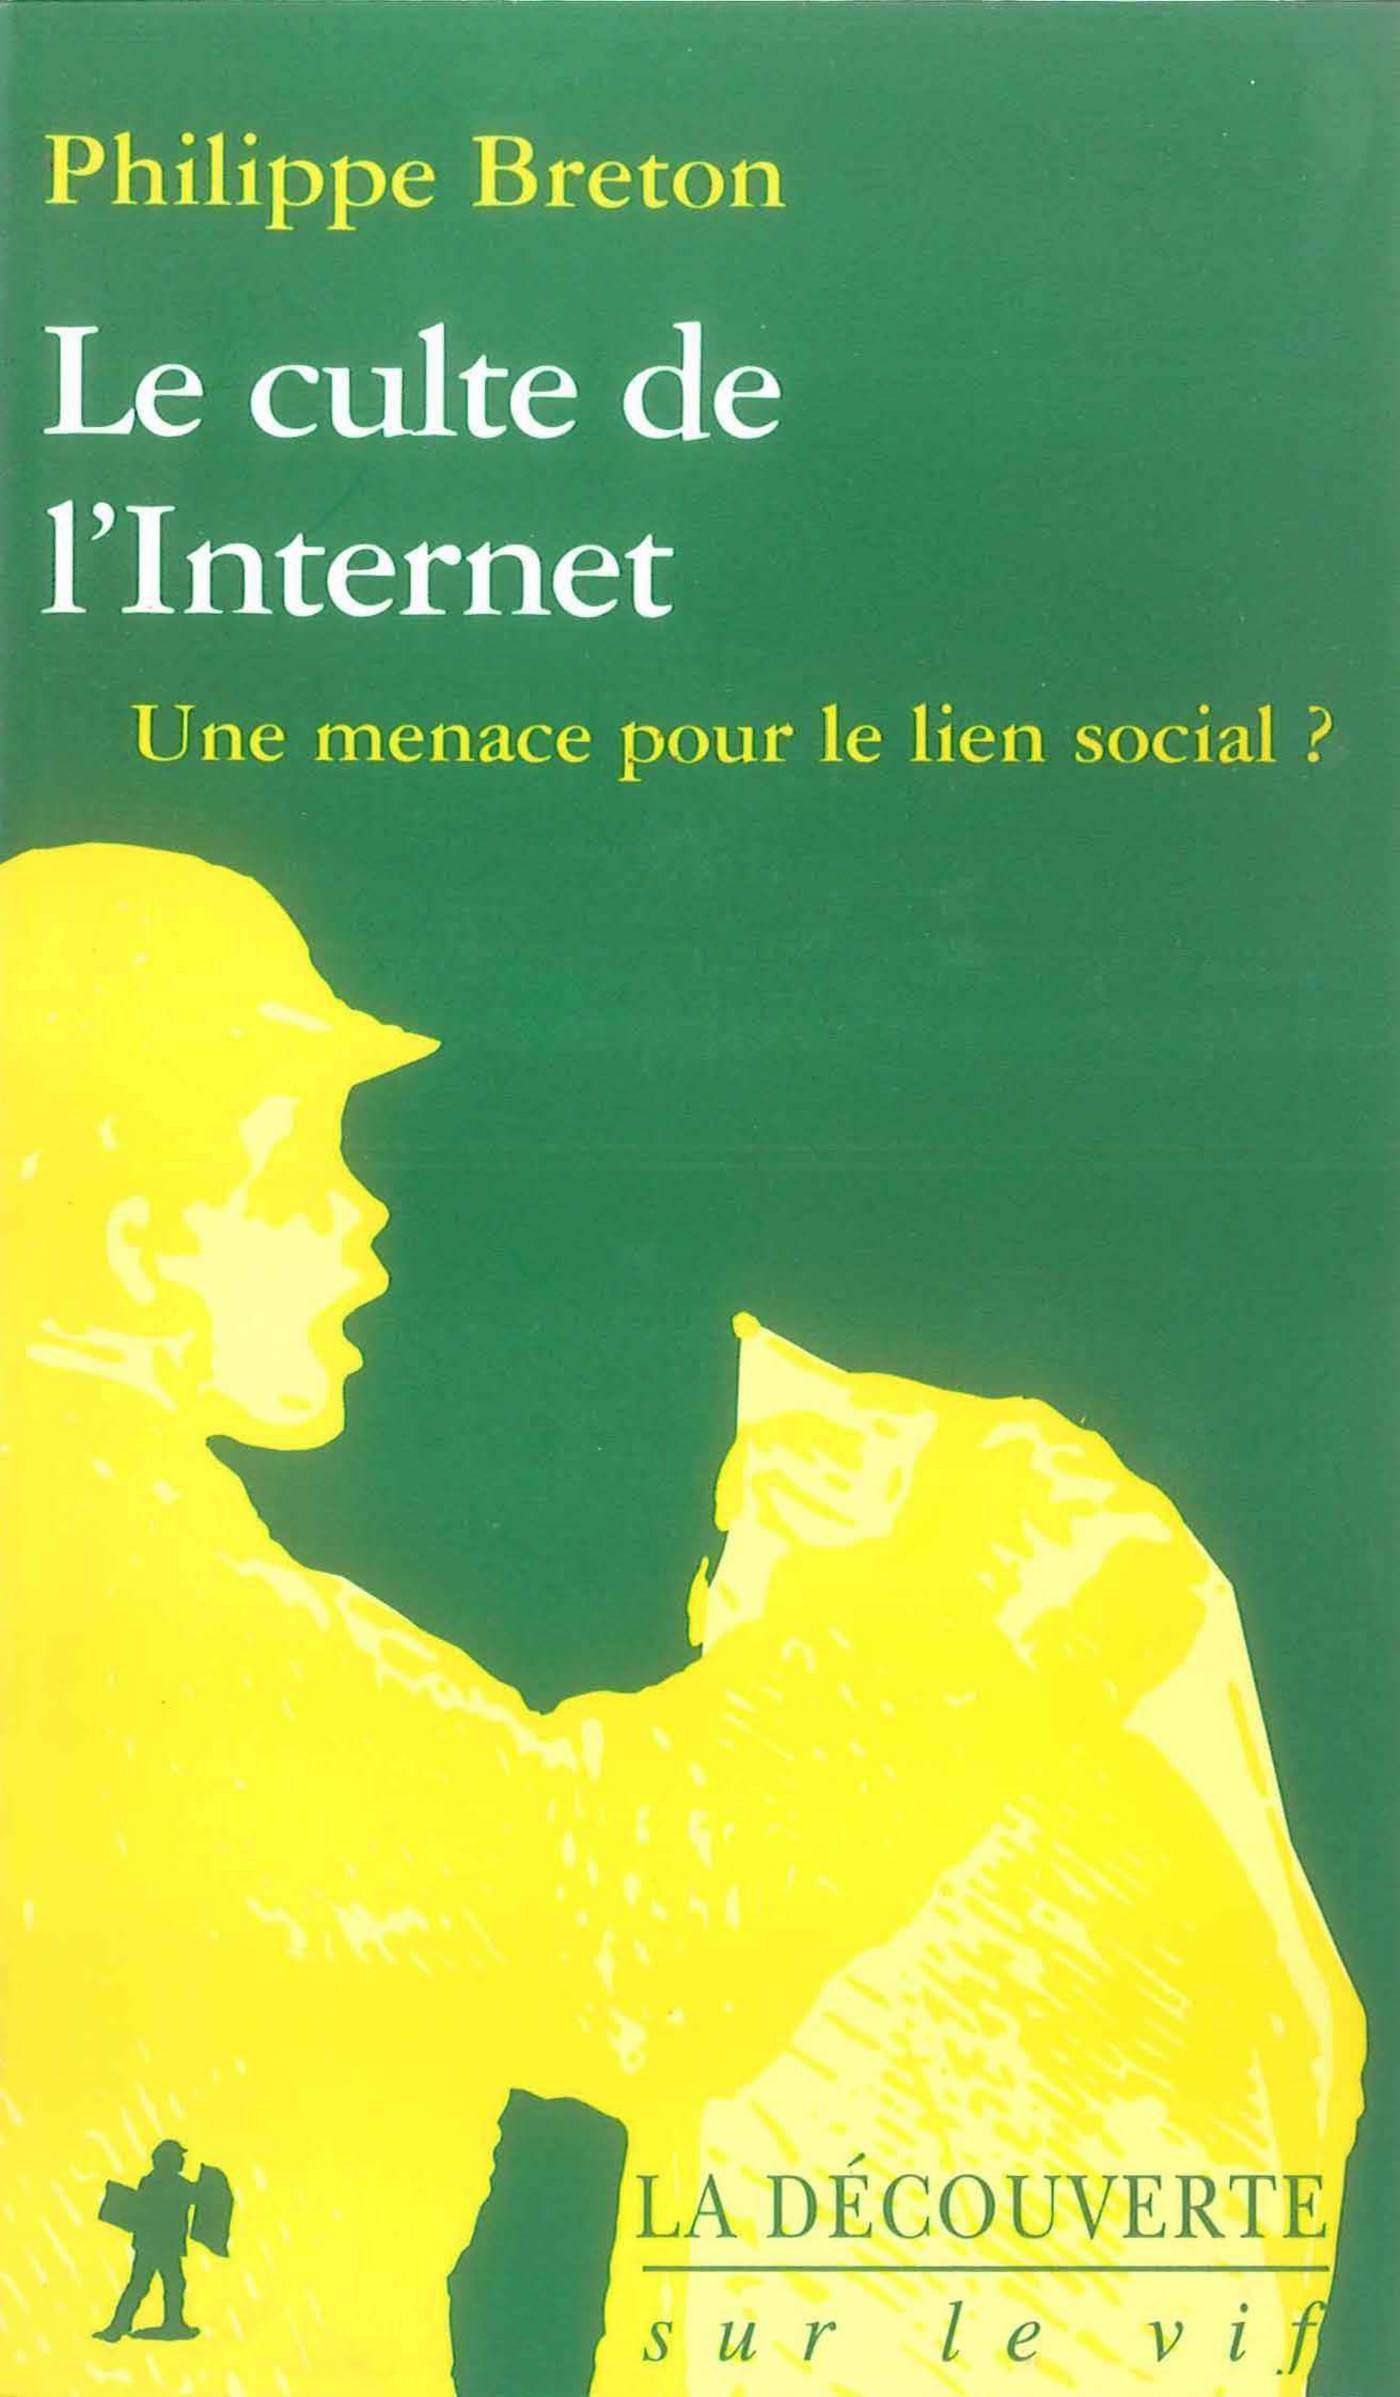 Le culte de l'Internet (ebook)